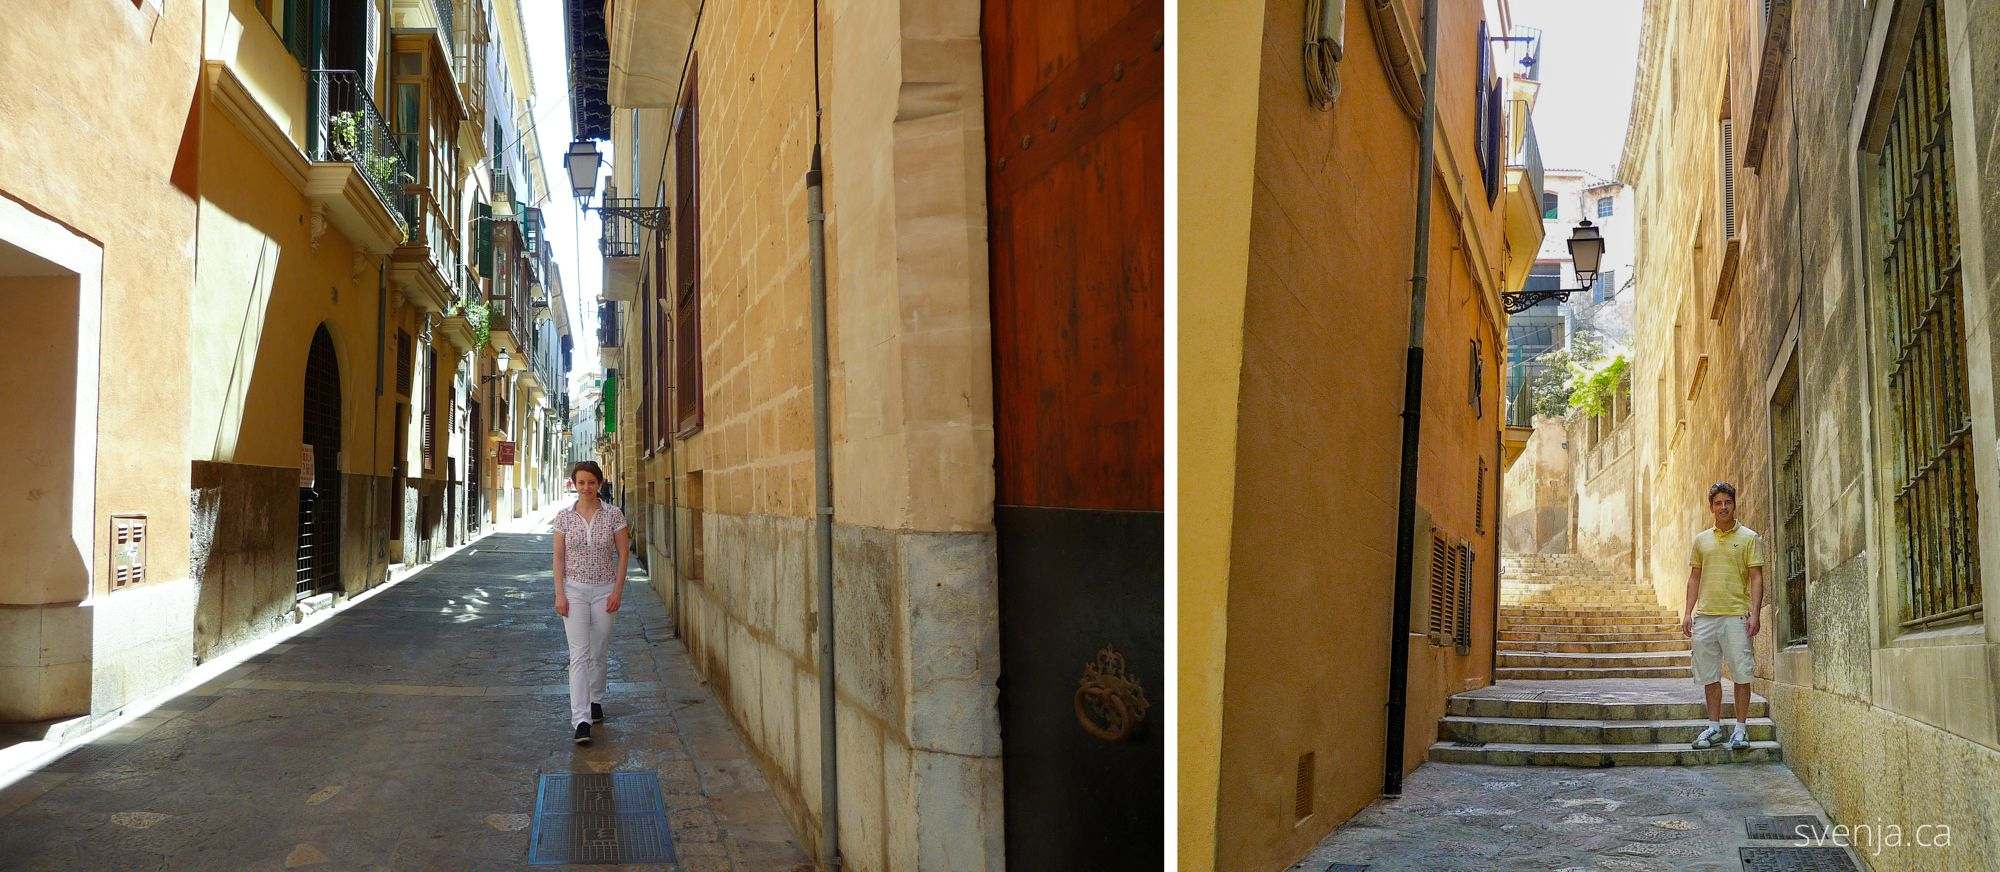 Two pictures, one with Svenja, one with Aaron, but both in Mallorca, Spain